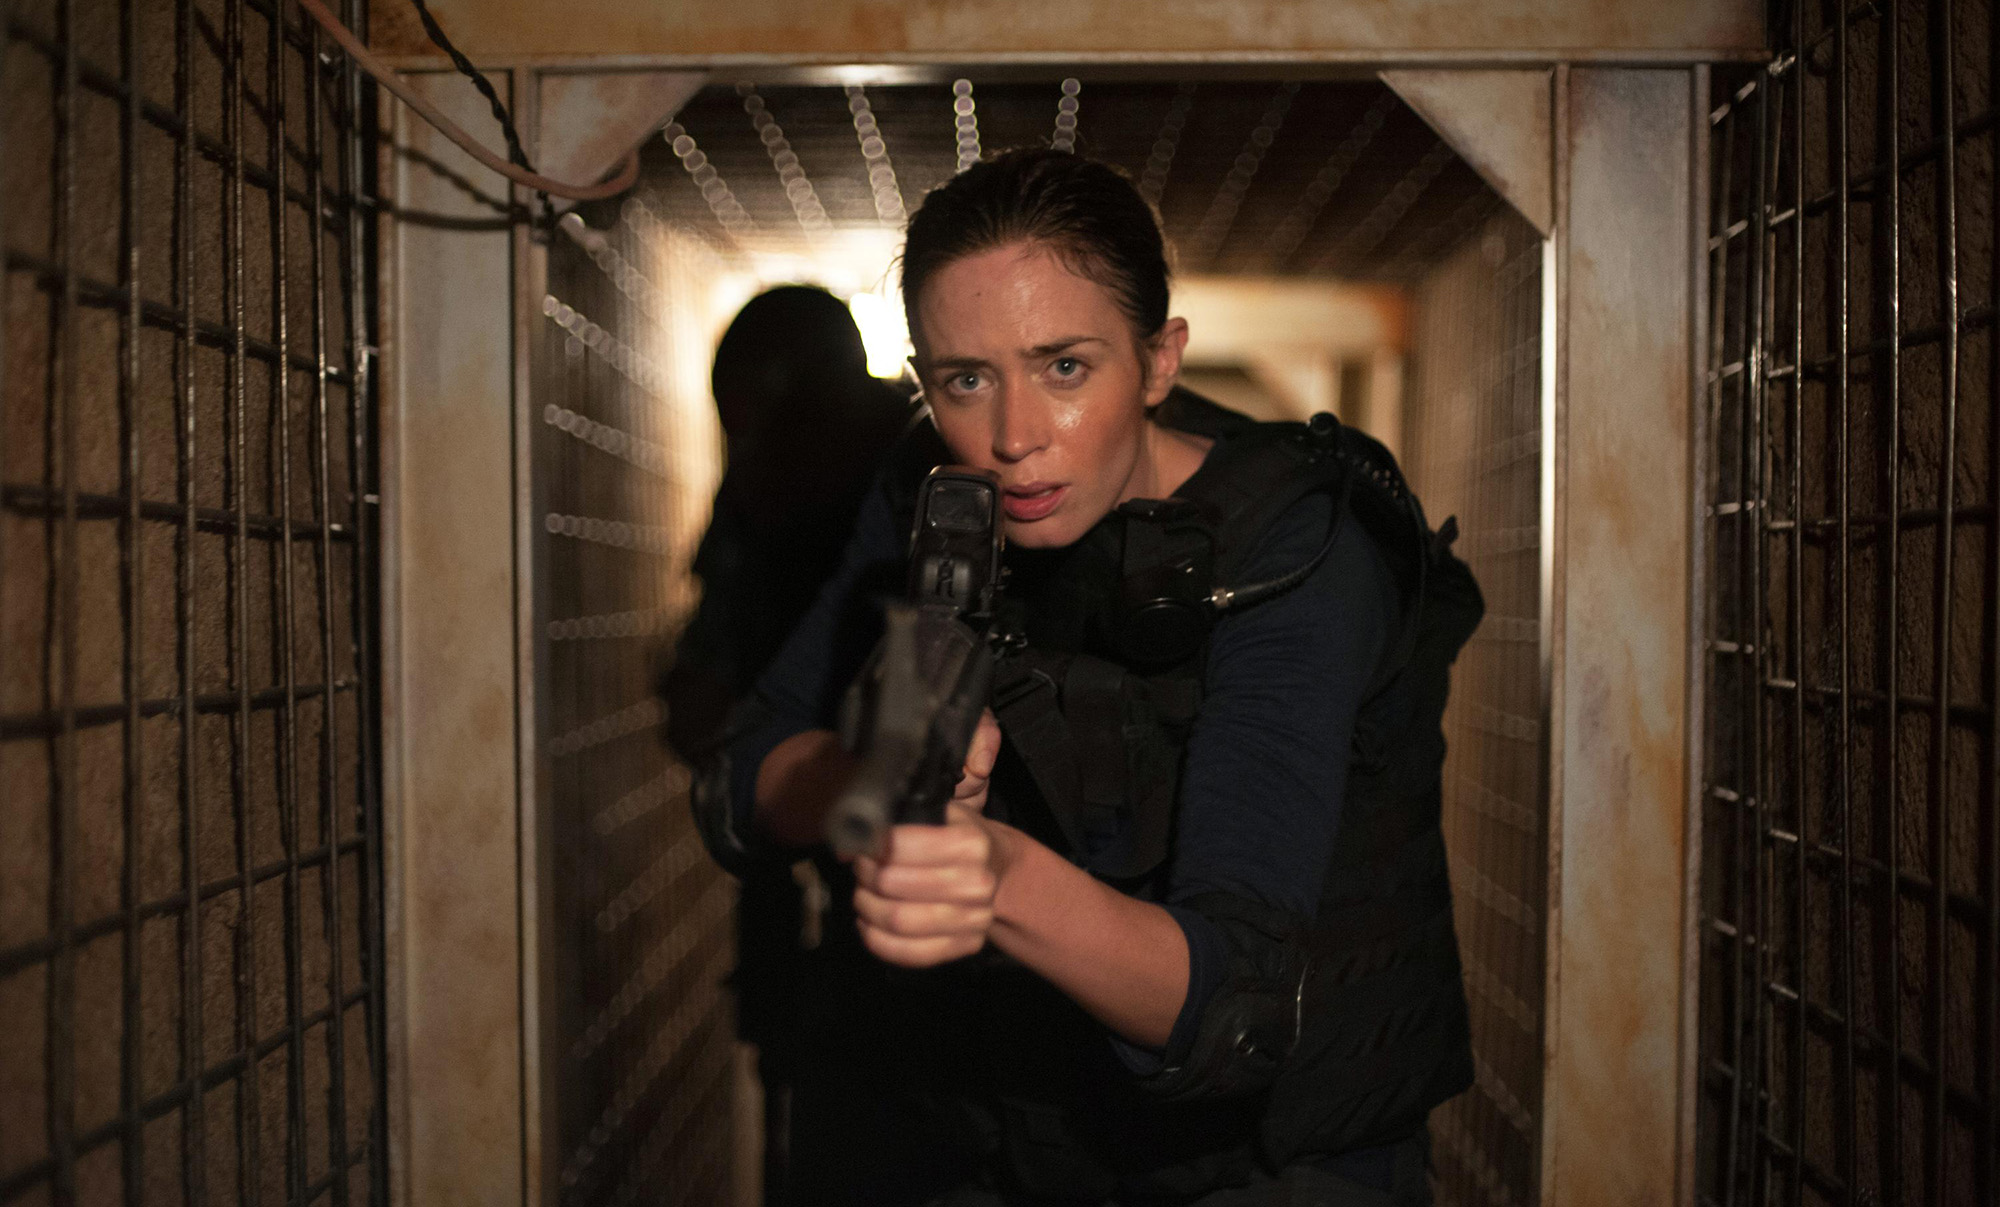 Emily Blunt as FBI agent Kate Macer in 'Sicario', directed by Denis Villeneuve.